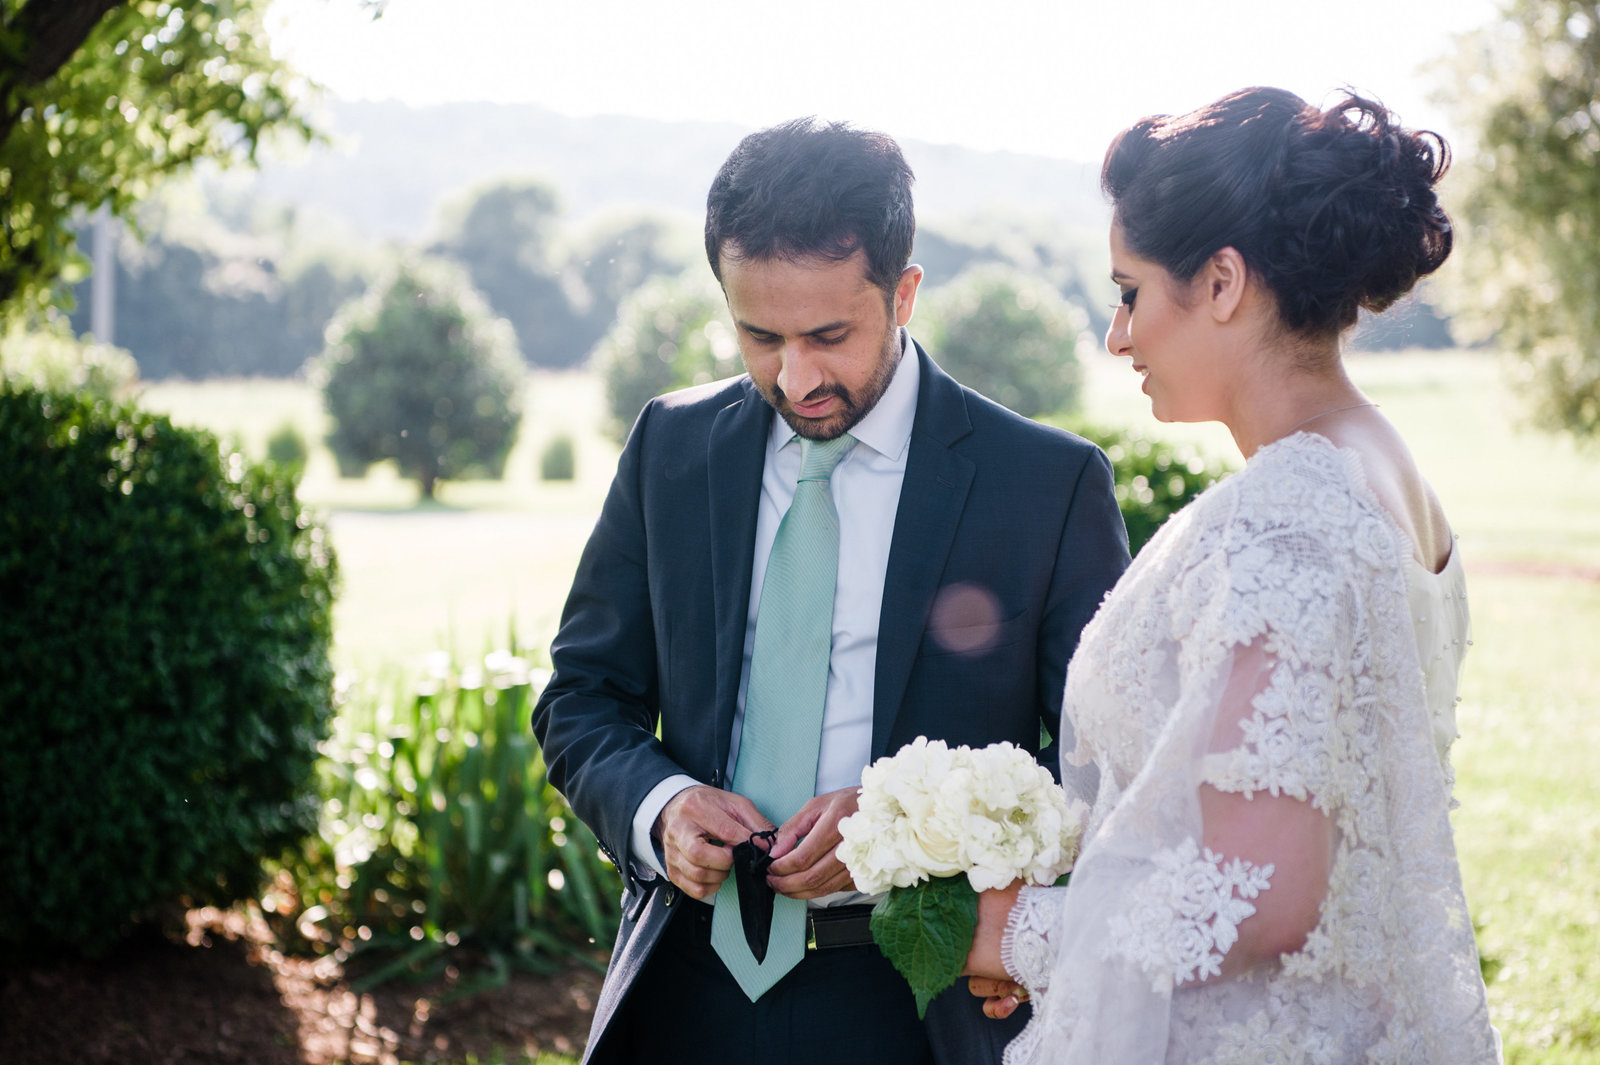 Minhas-Sohail Wedding by The Hill Studios-135